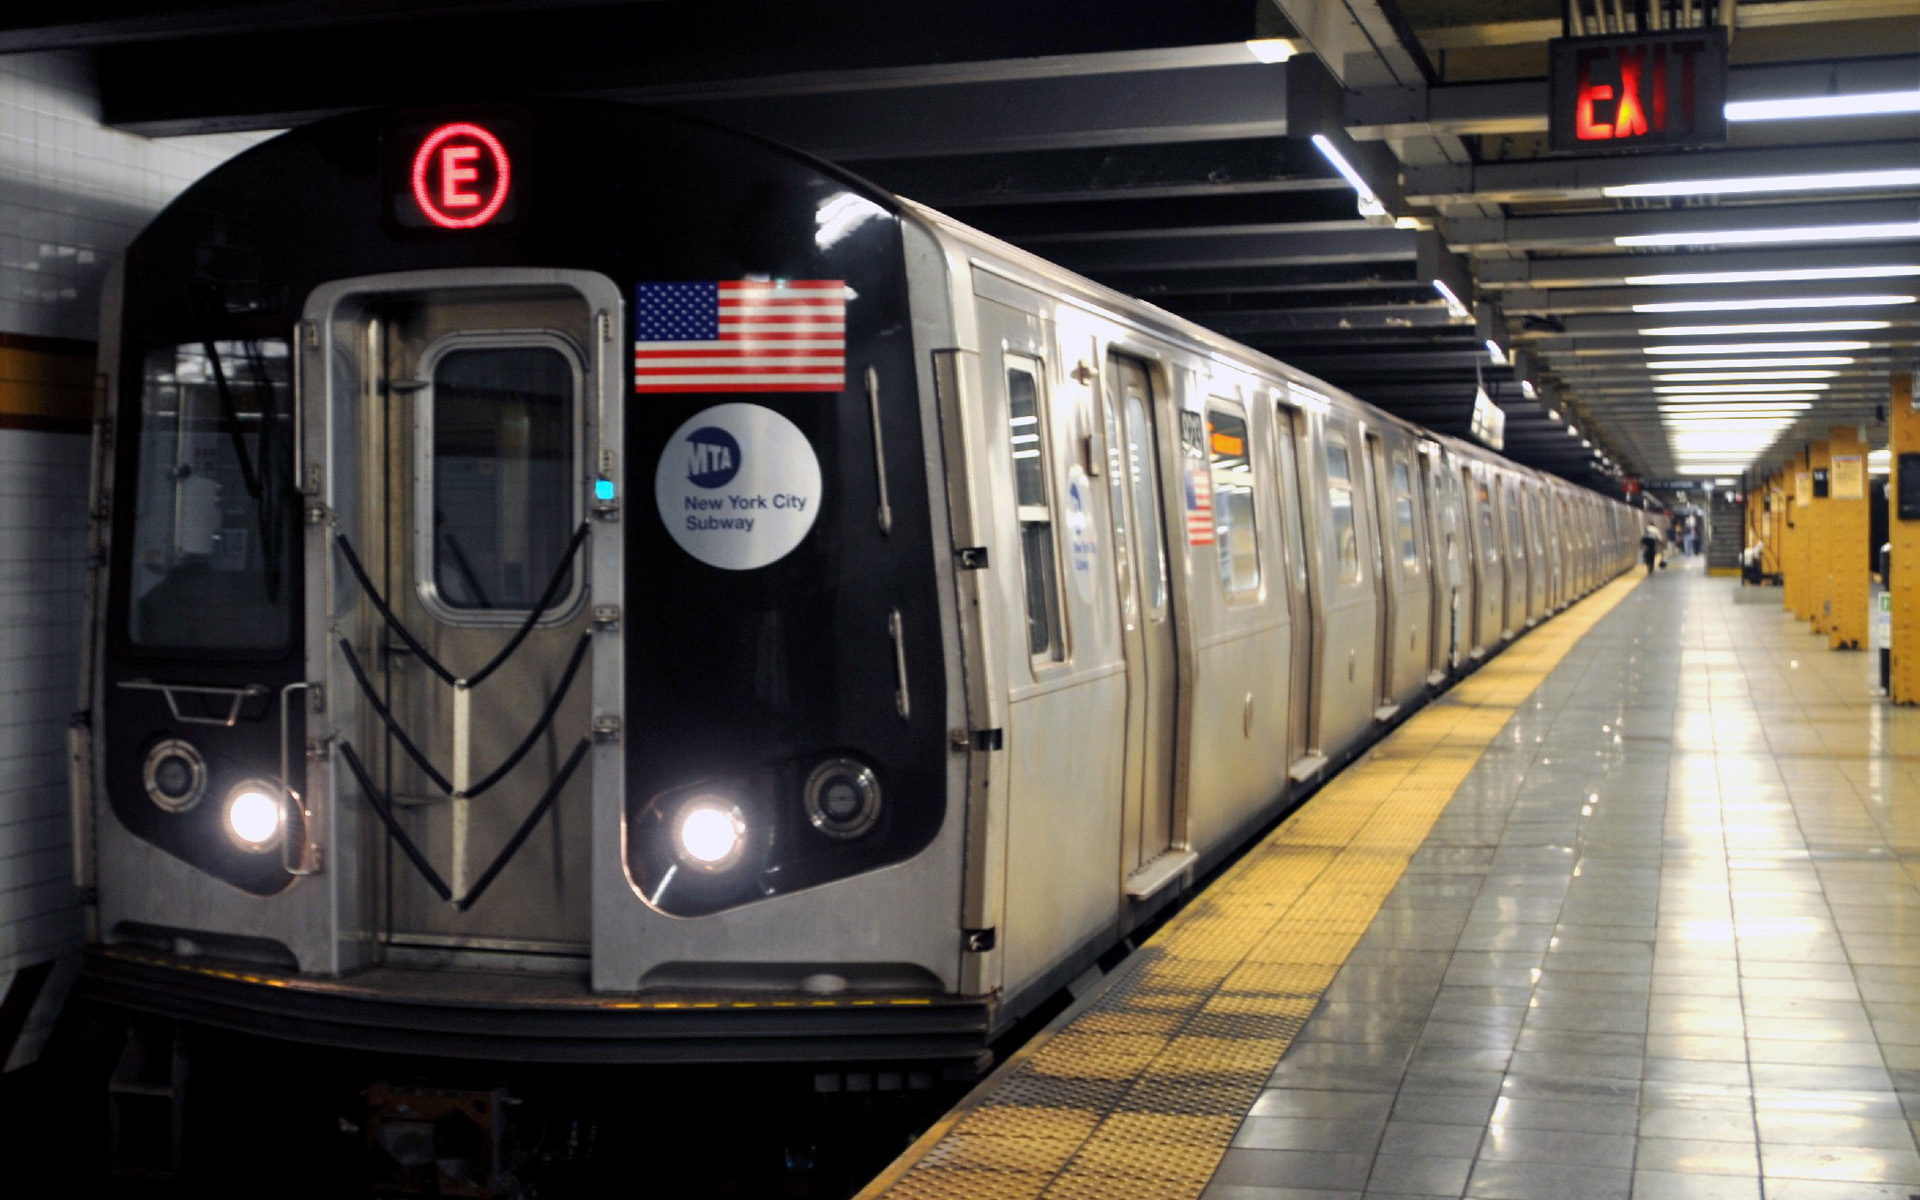 Nyc Subway To Use Gender Neutral Terms During Announcements